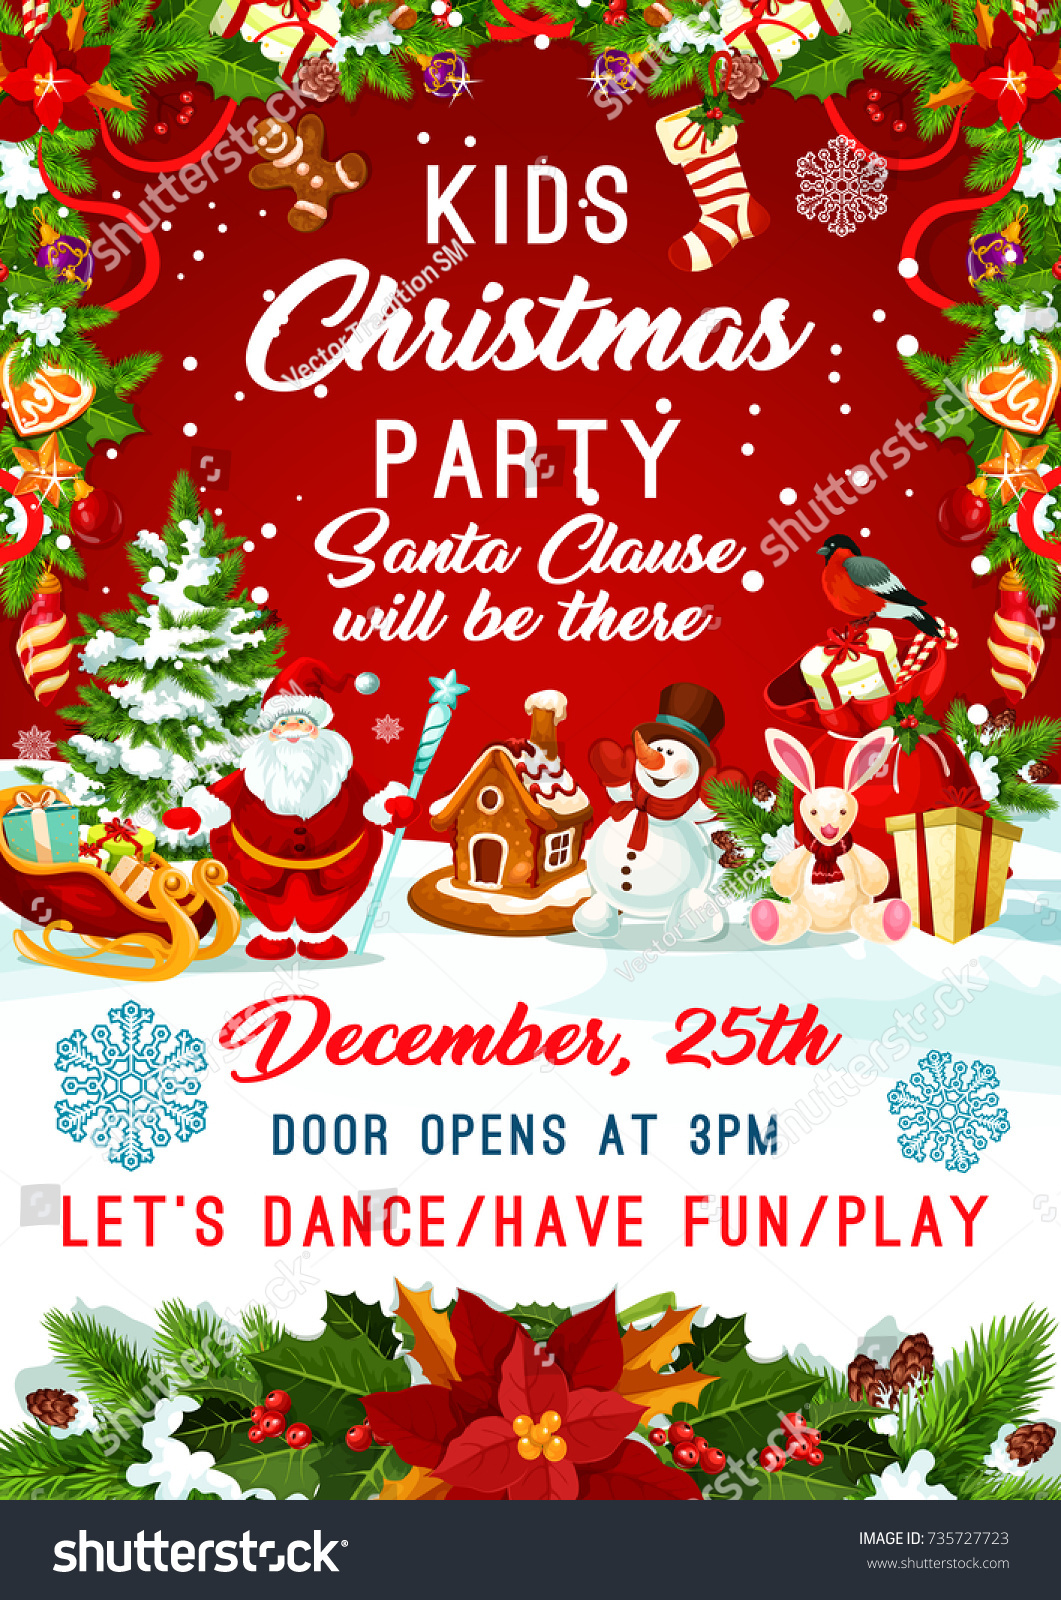 kids christmas party invitation poster template for new year winter holiday december party celebration vector